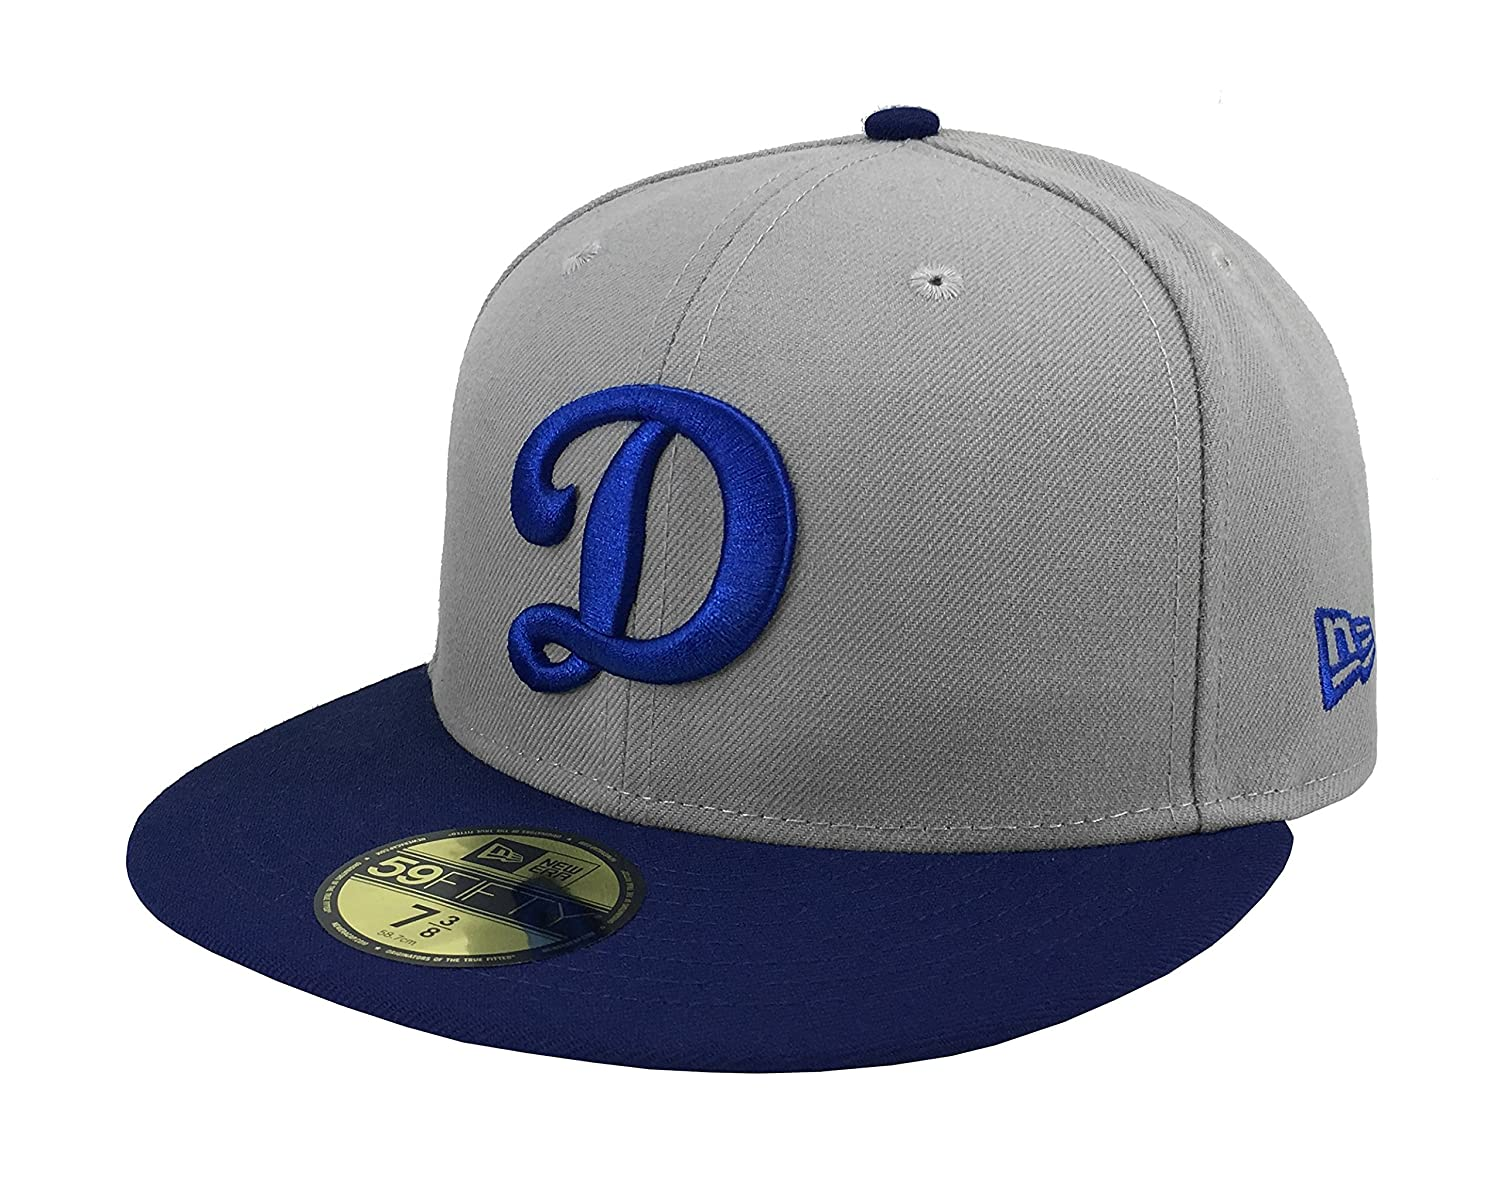 e0a1dcda New Era 59Fifty MLB Cap Los Angeles Dodgers D Gray/Dark Royal Blue Fitted  Hat